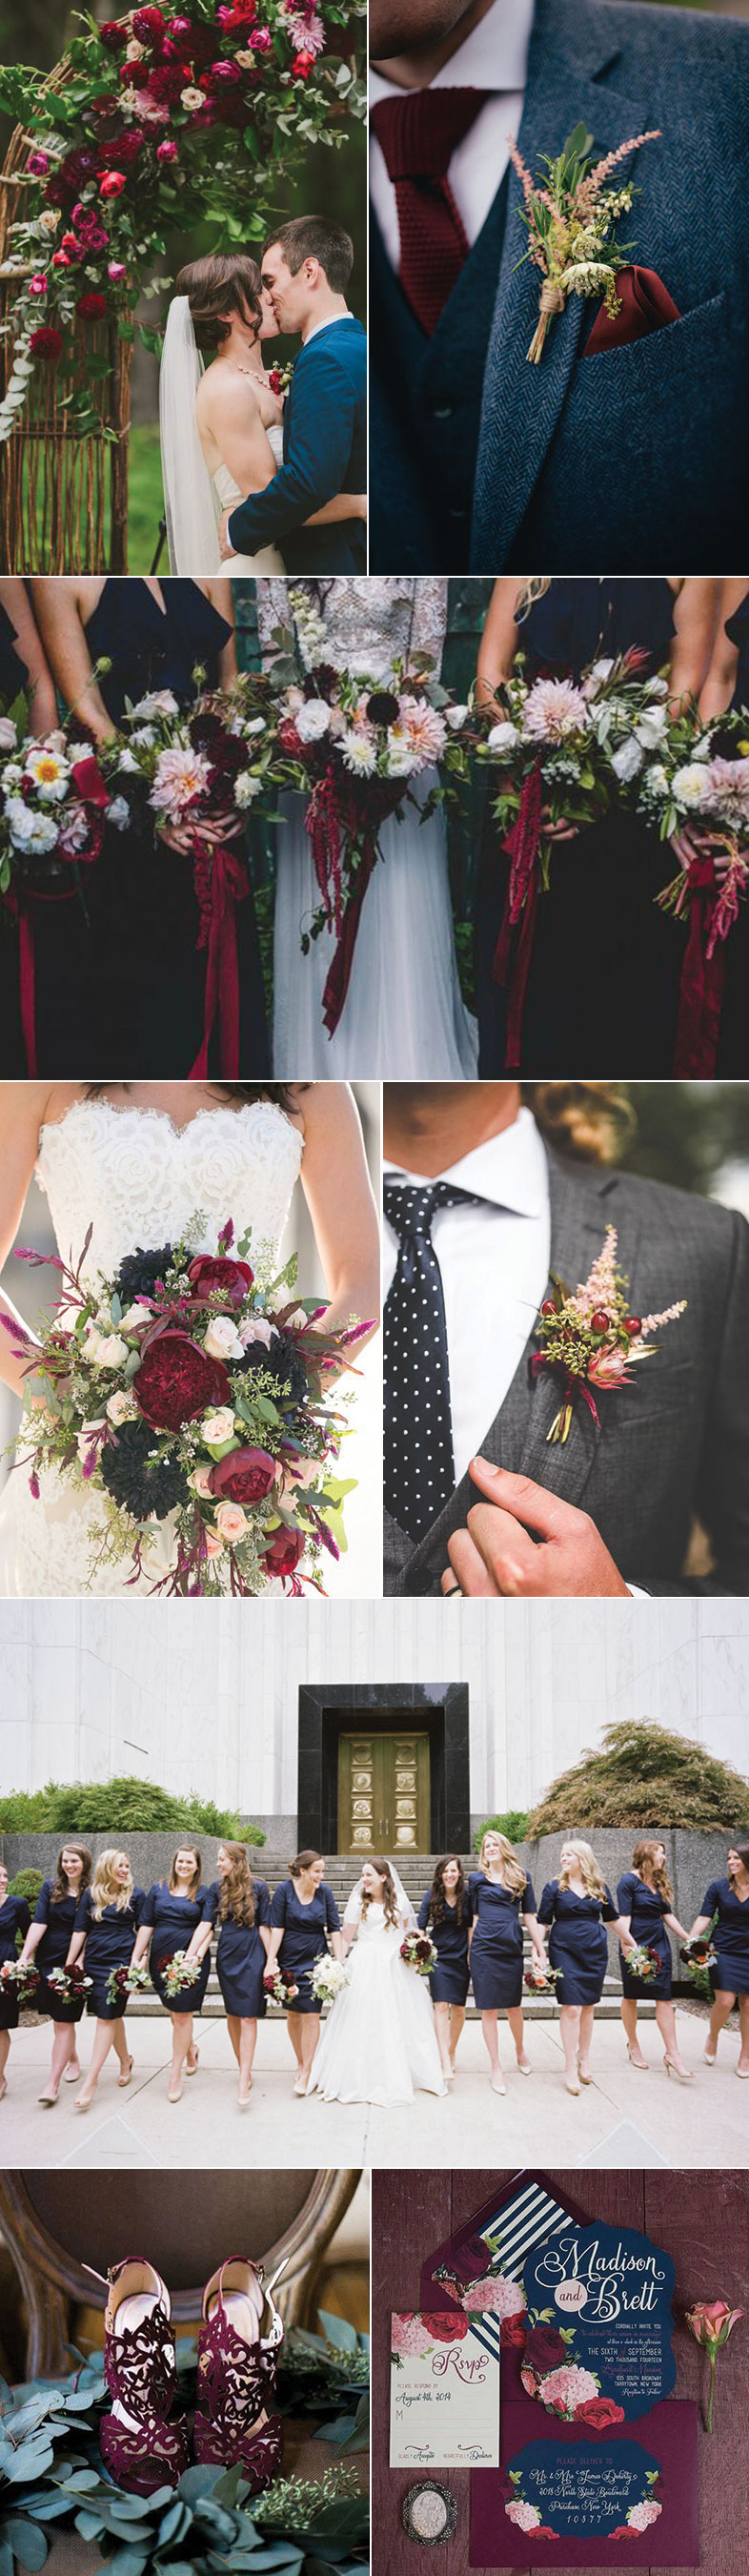 Marsala + Navy Wedding Color Inspiration | Bows-N-Ties.com